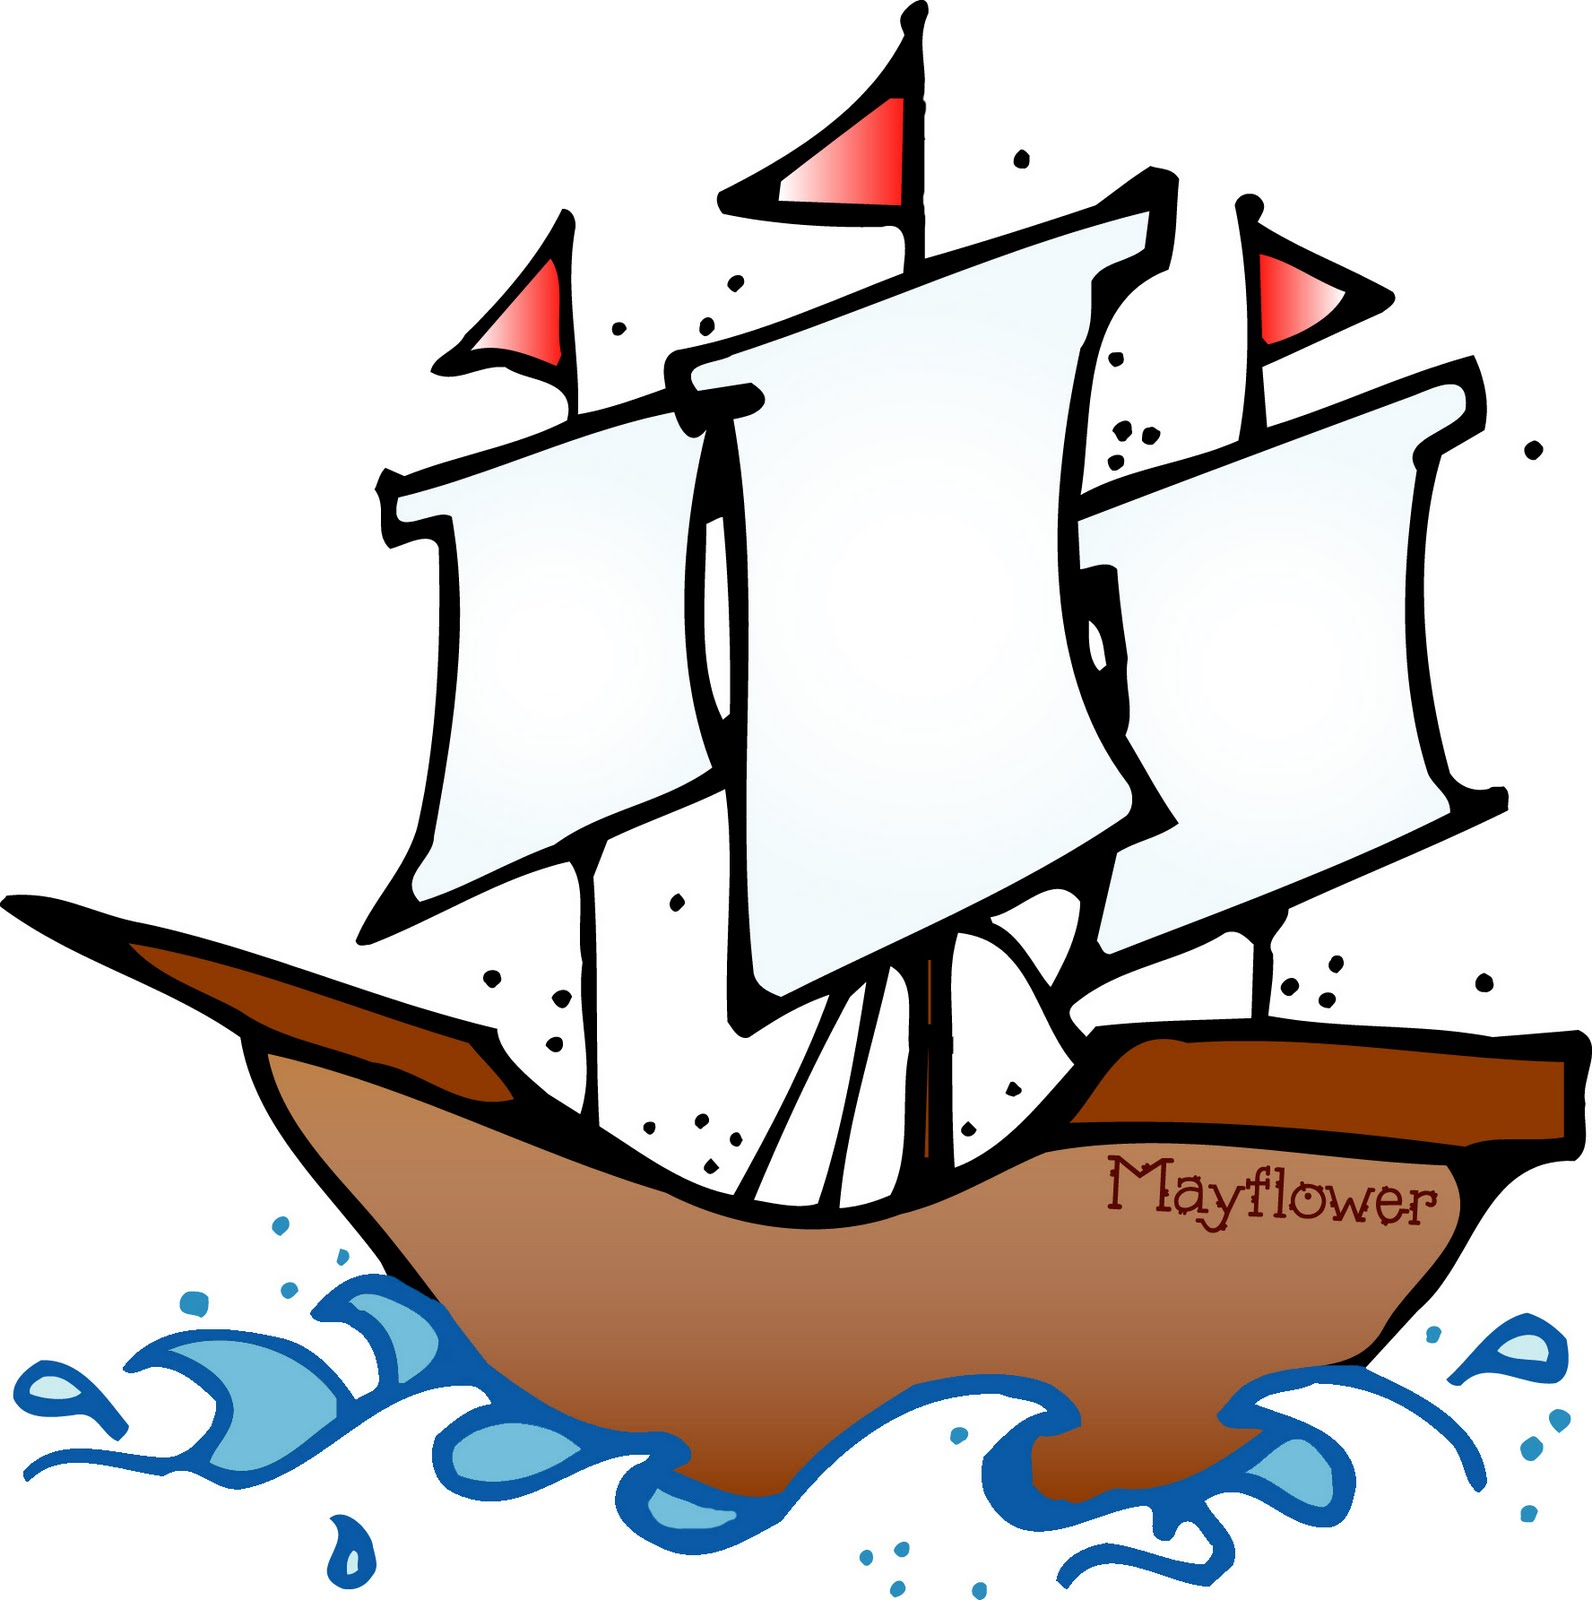 1592x1600 Collection Of Free Clipart Mayflower Ship High Quality, Free